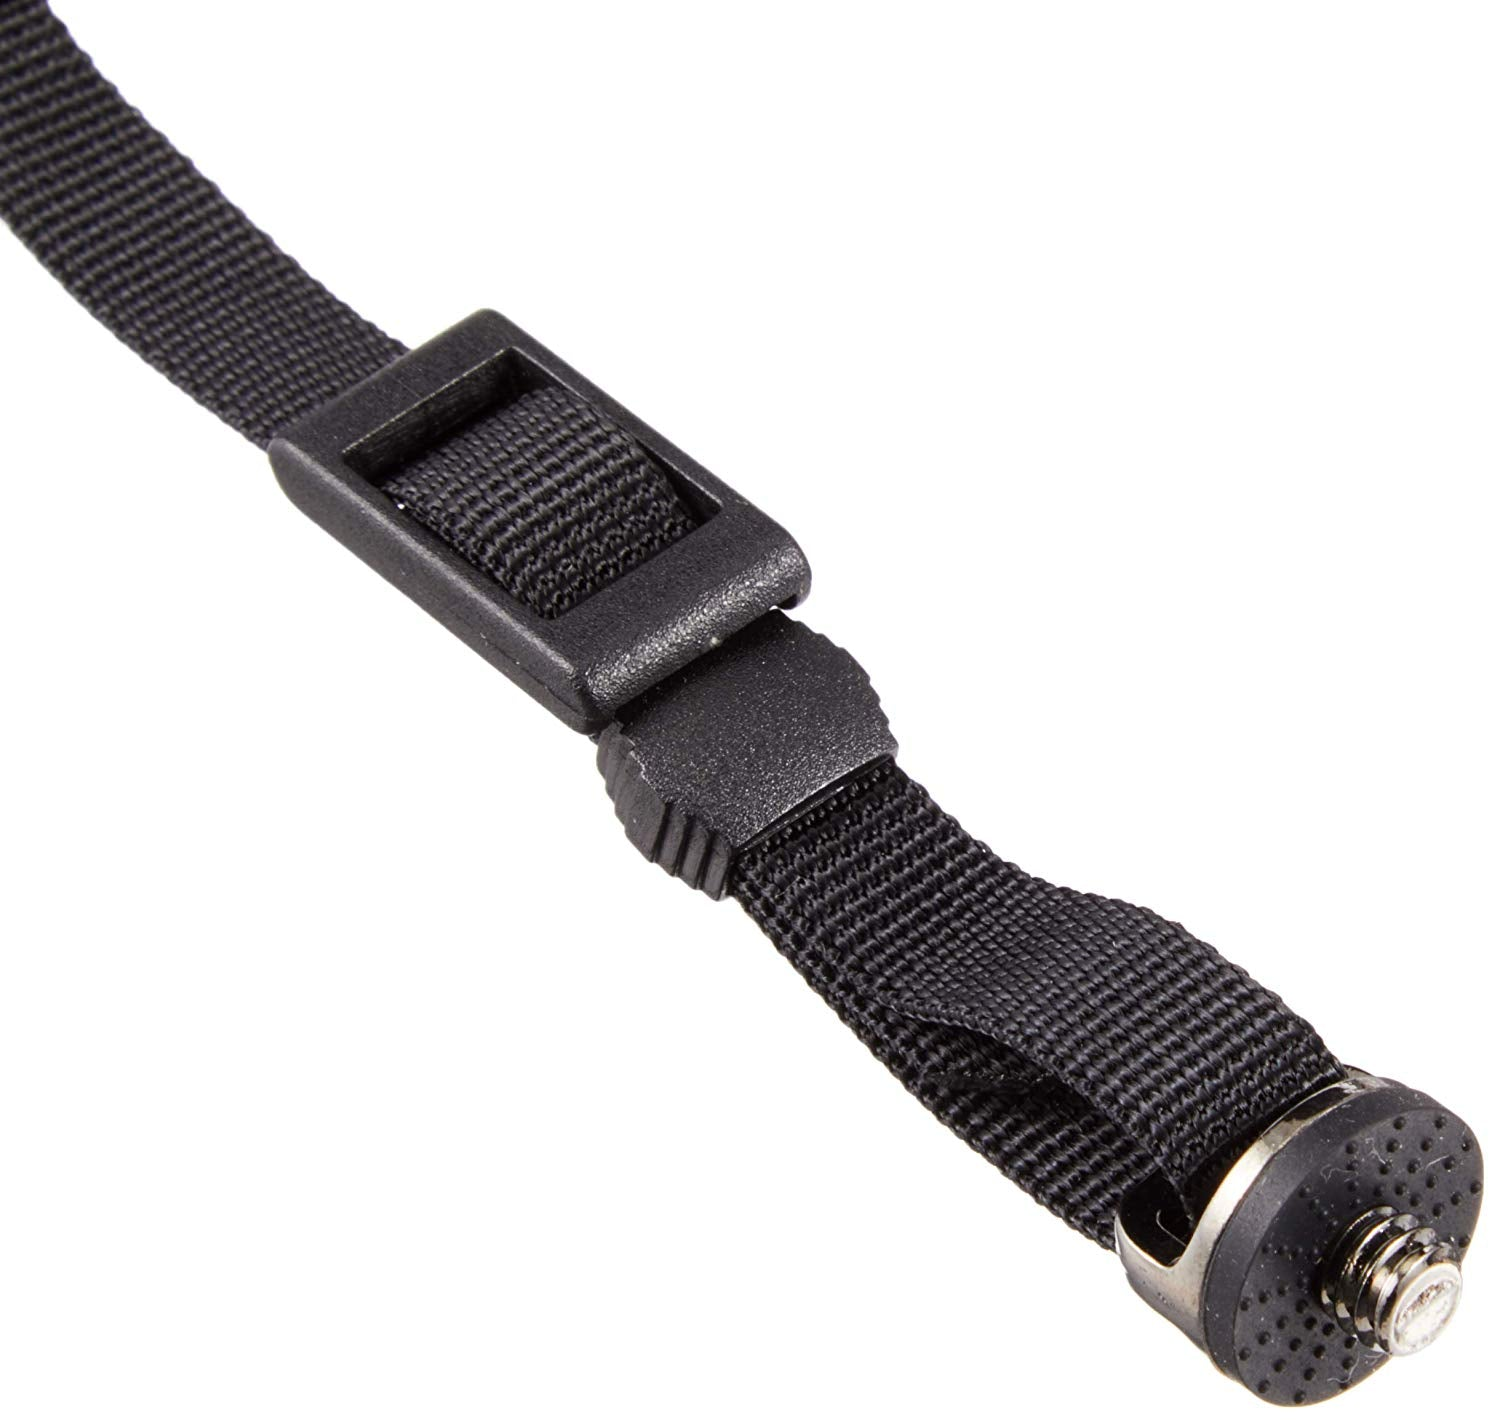 GGS Fotospeed Quick Release Camera Strap F1 King Kong [JU1231]